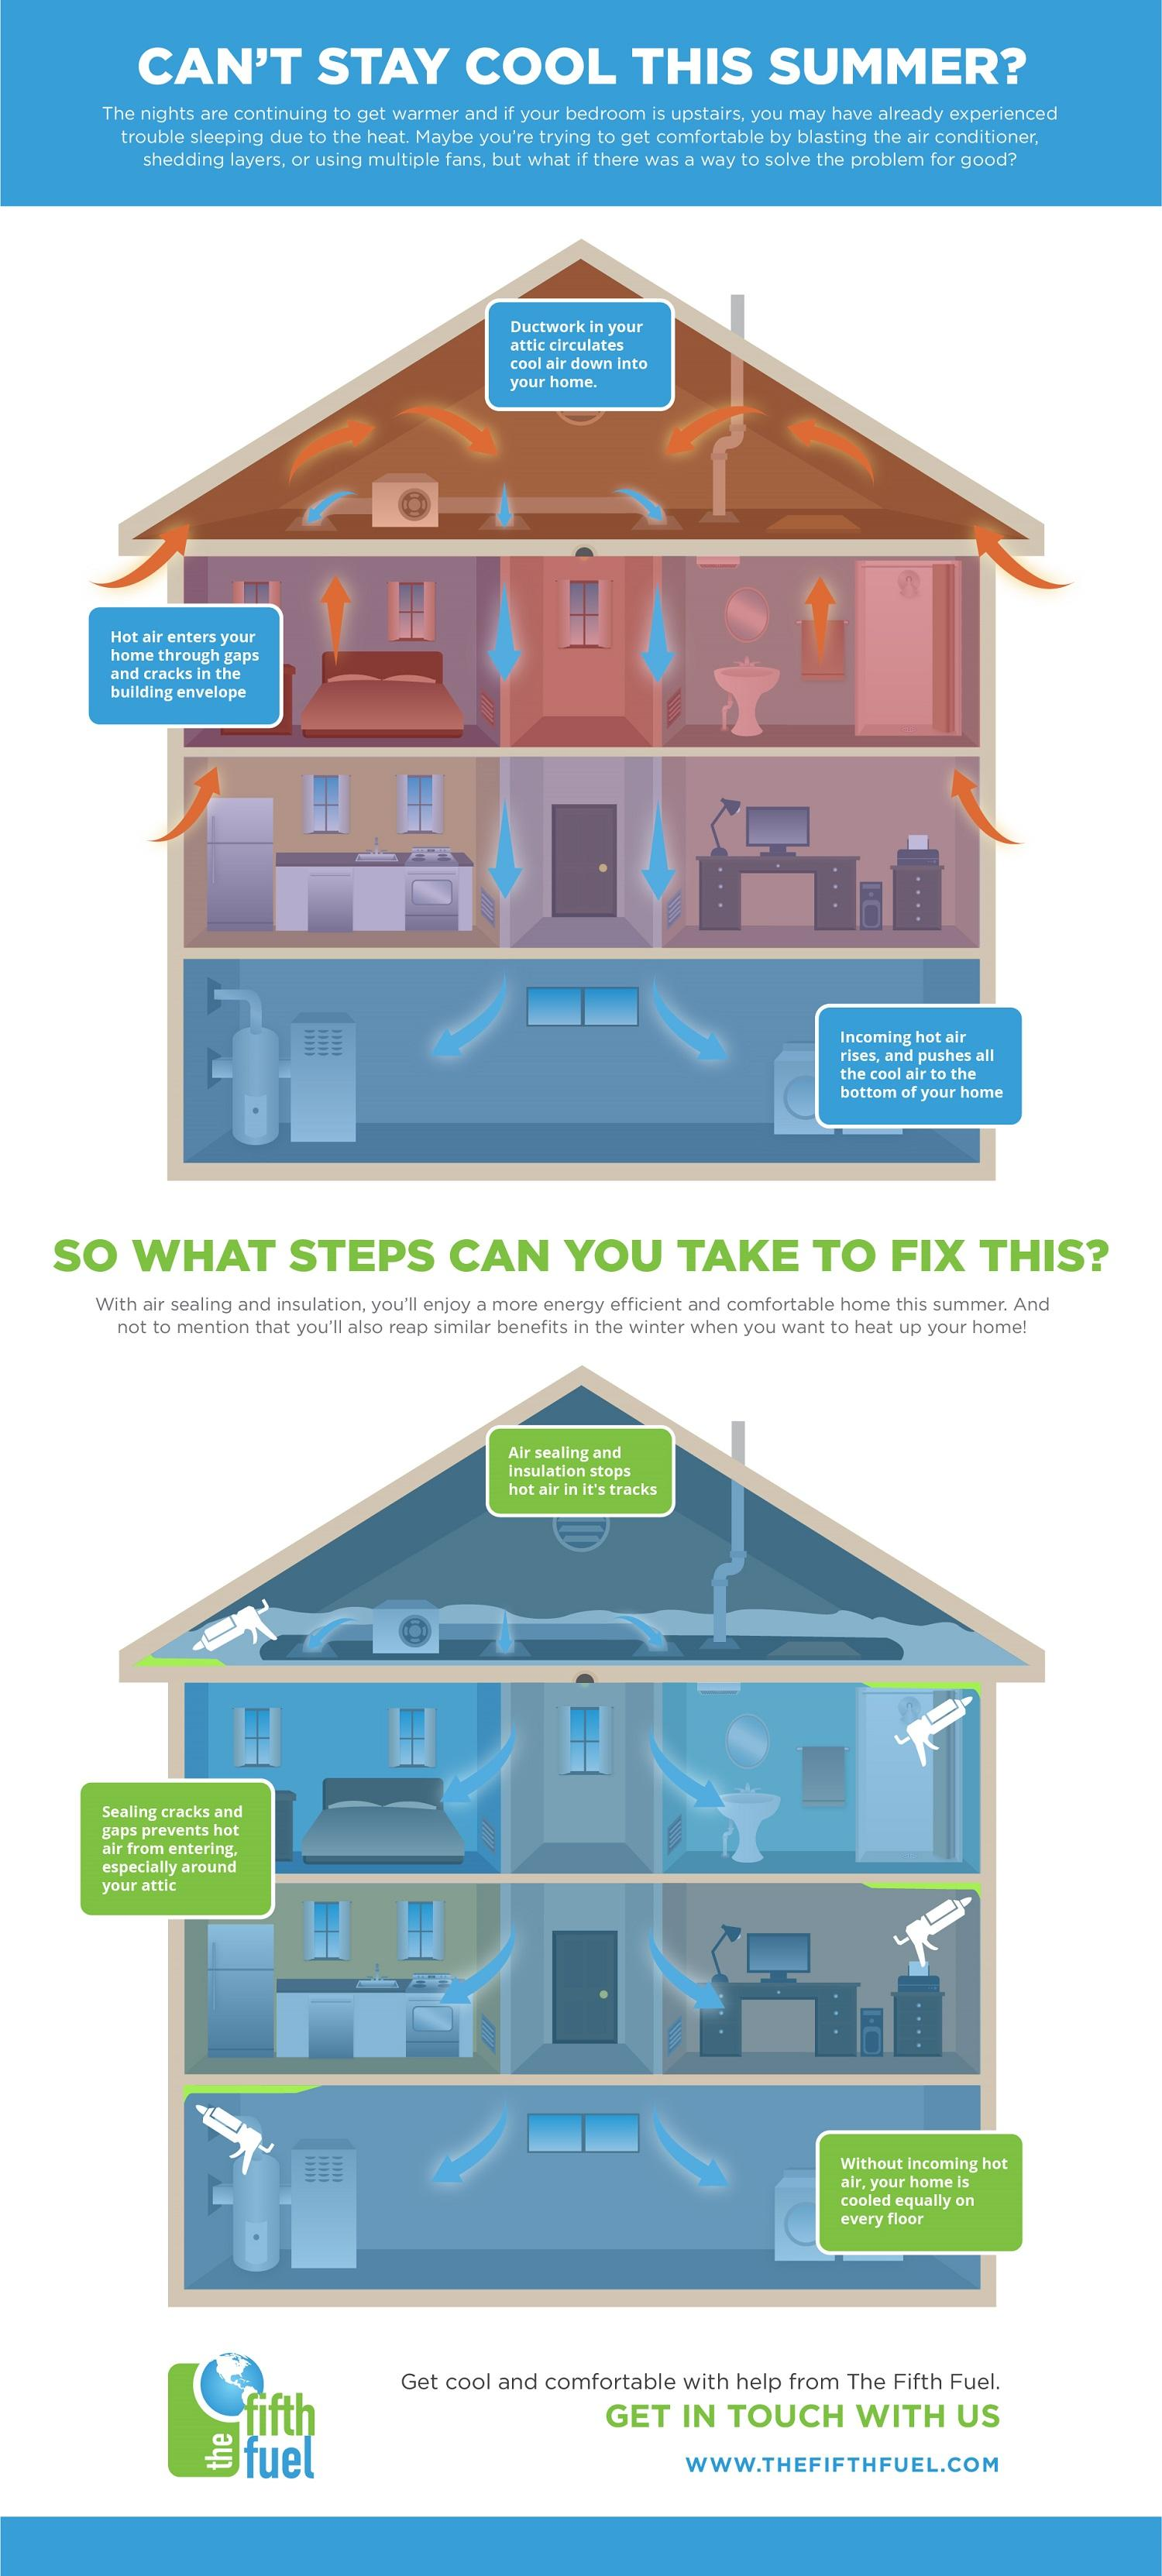 Air leaks infographic showing the various parts of the home where air is coming in and how to prevent it. Created by The Fifth Fuel in Manassas, VA